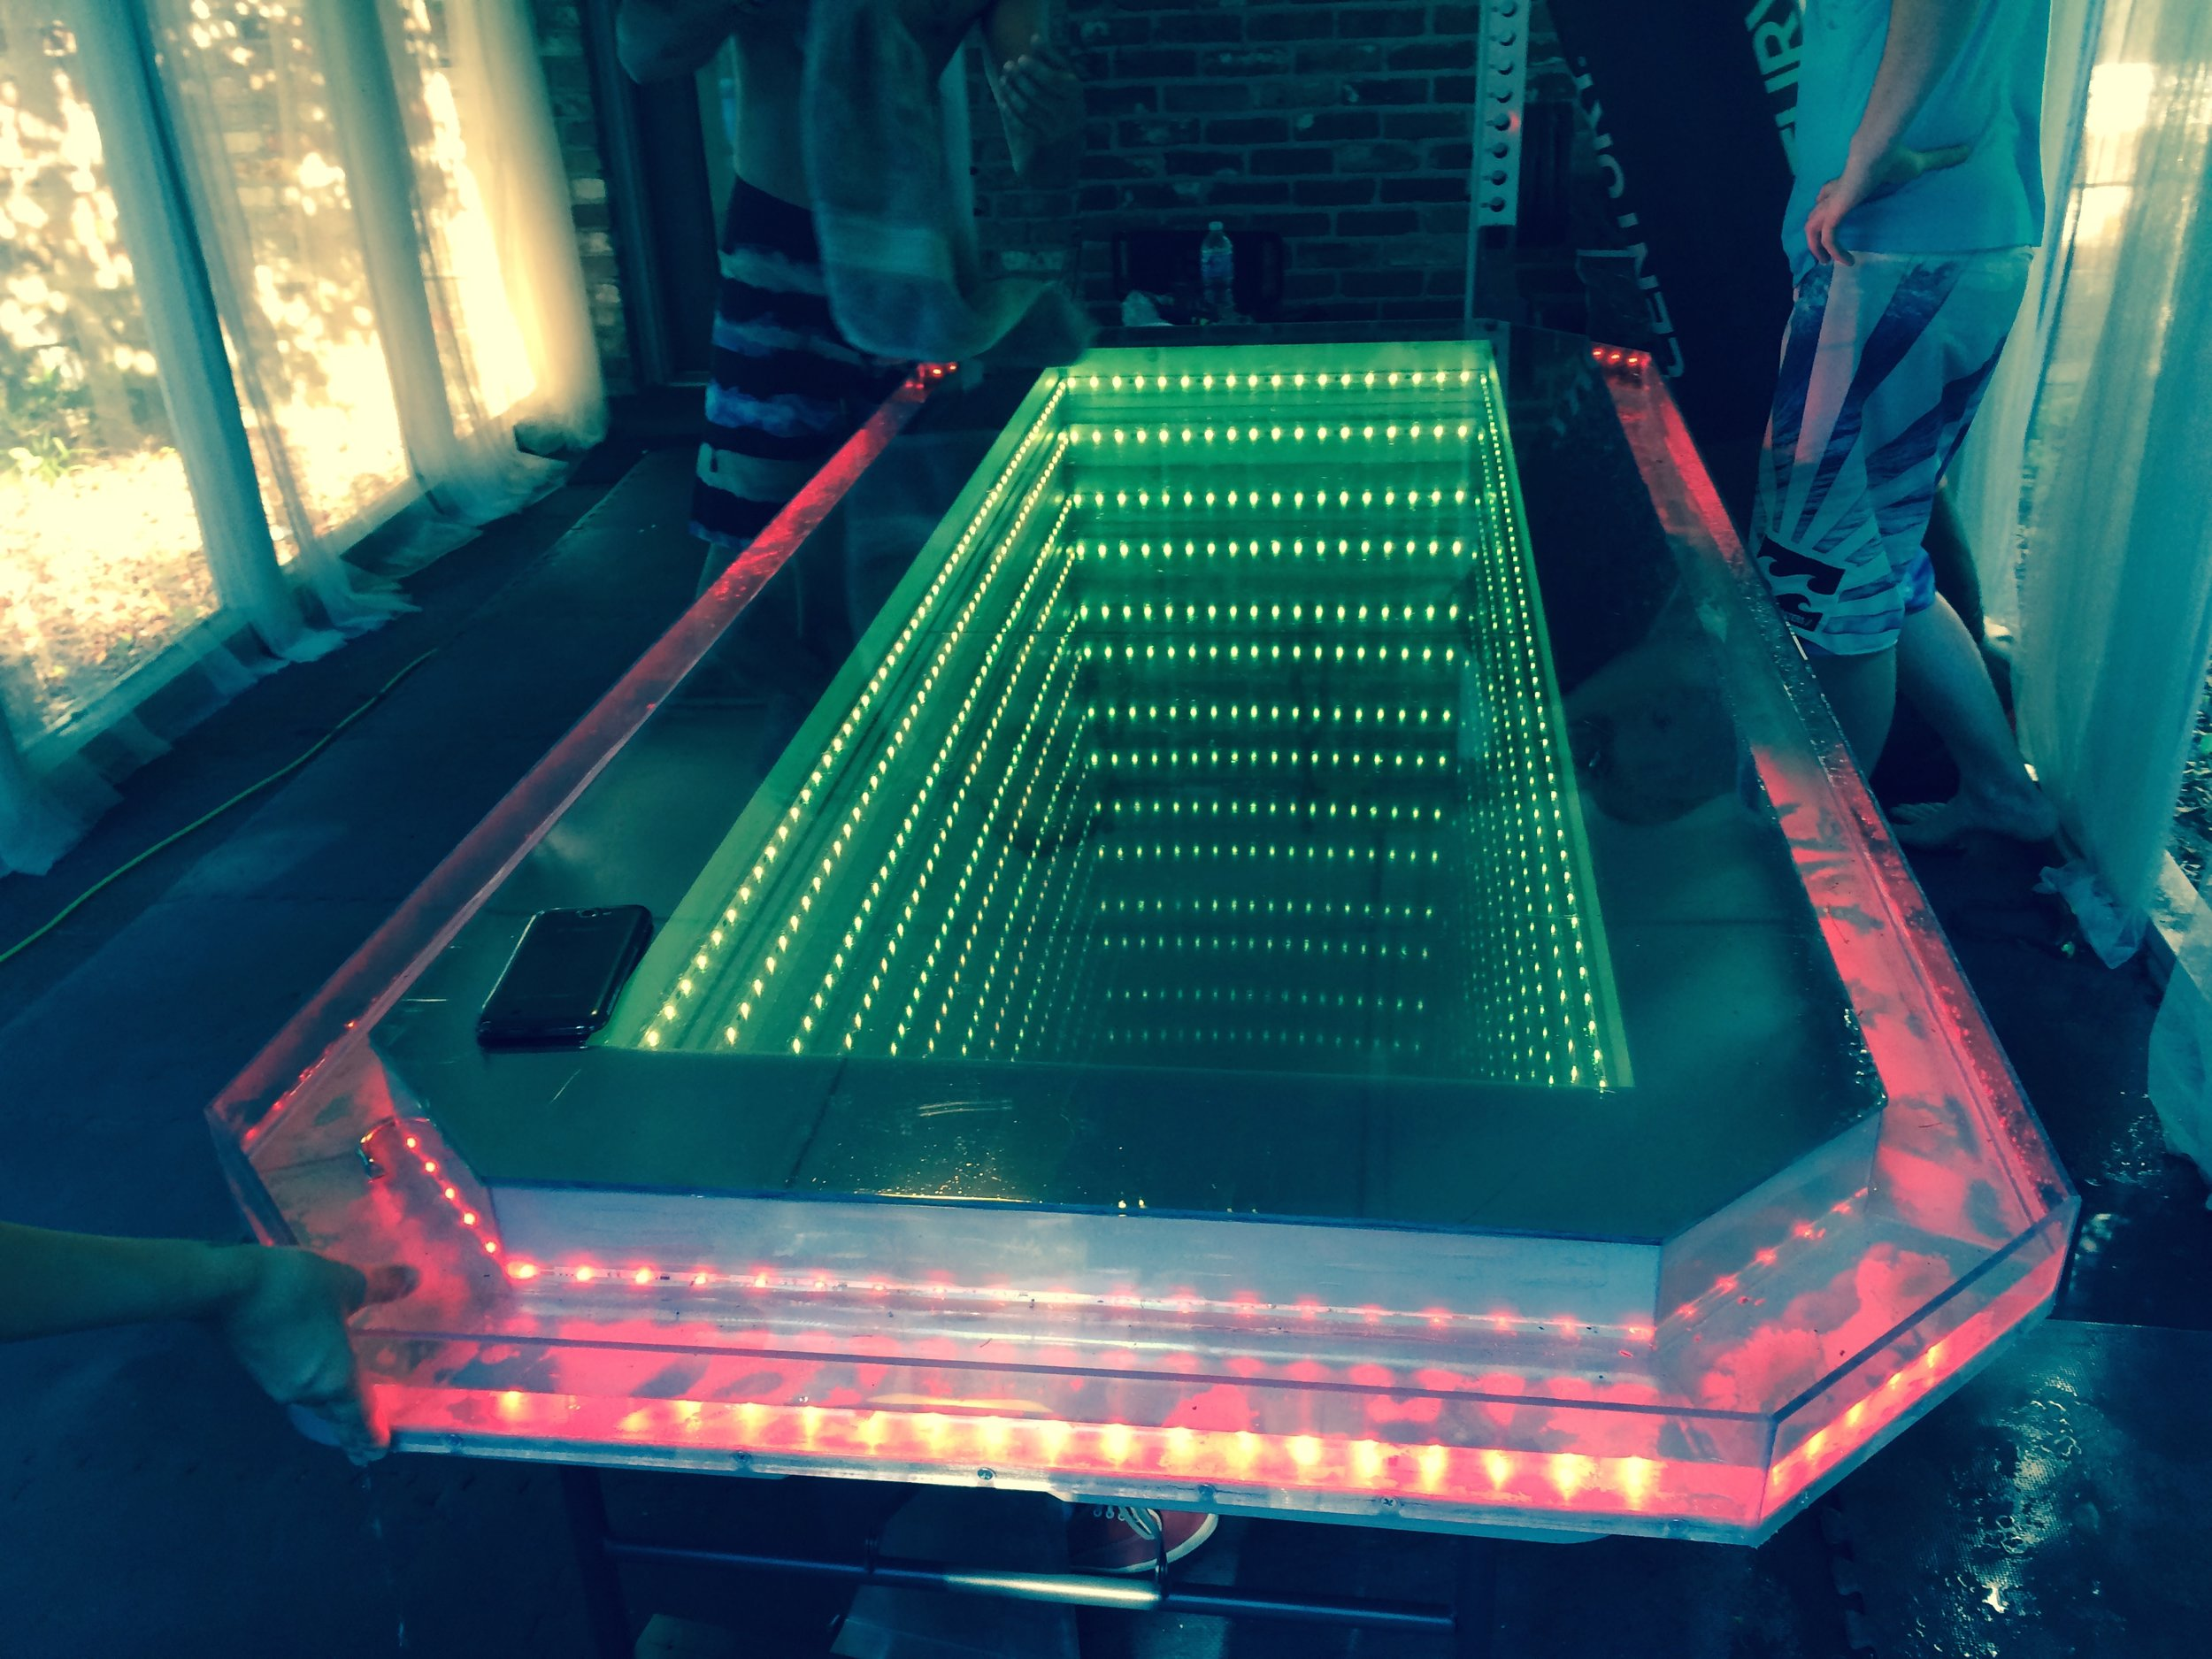 Just for the nerds, our infinity glass beer pong table. Complete with wrap around water moat.